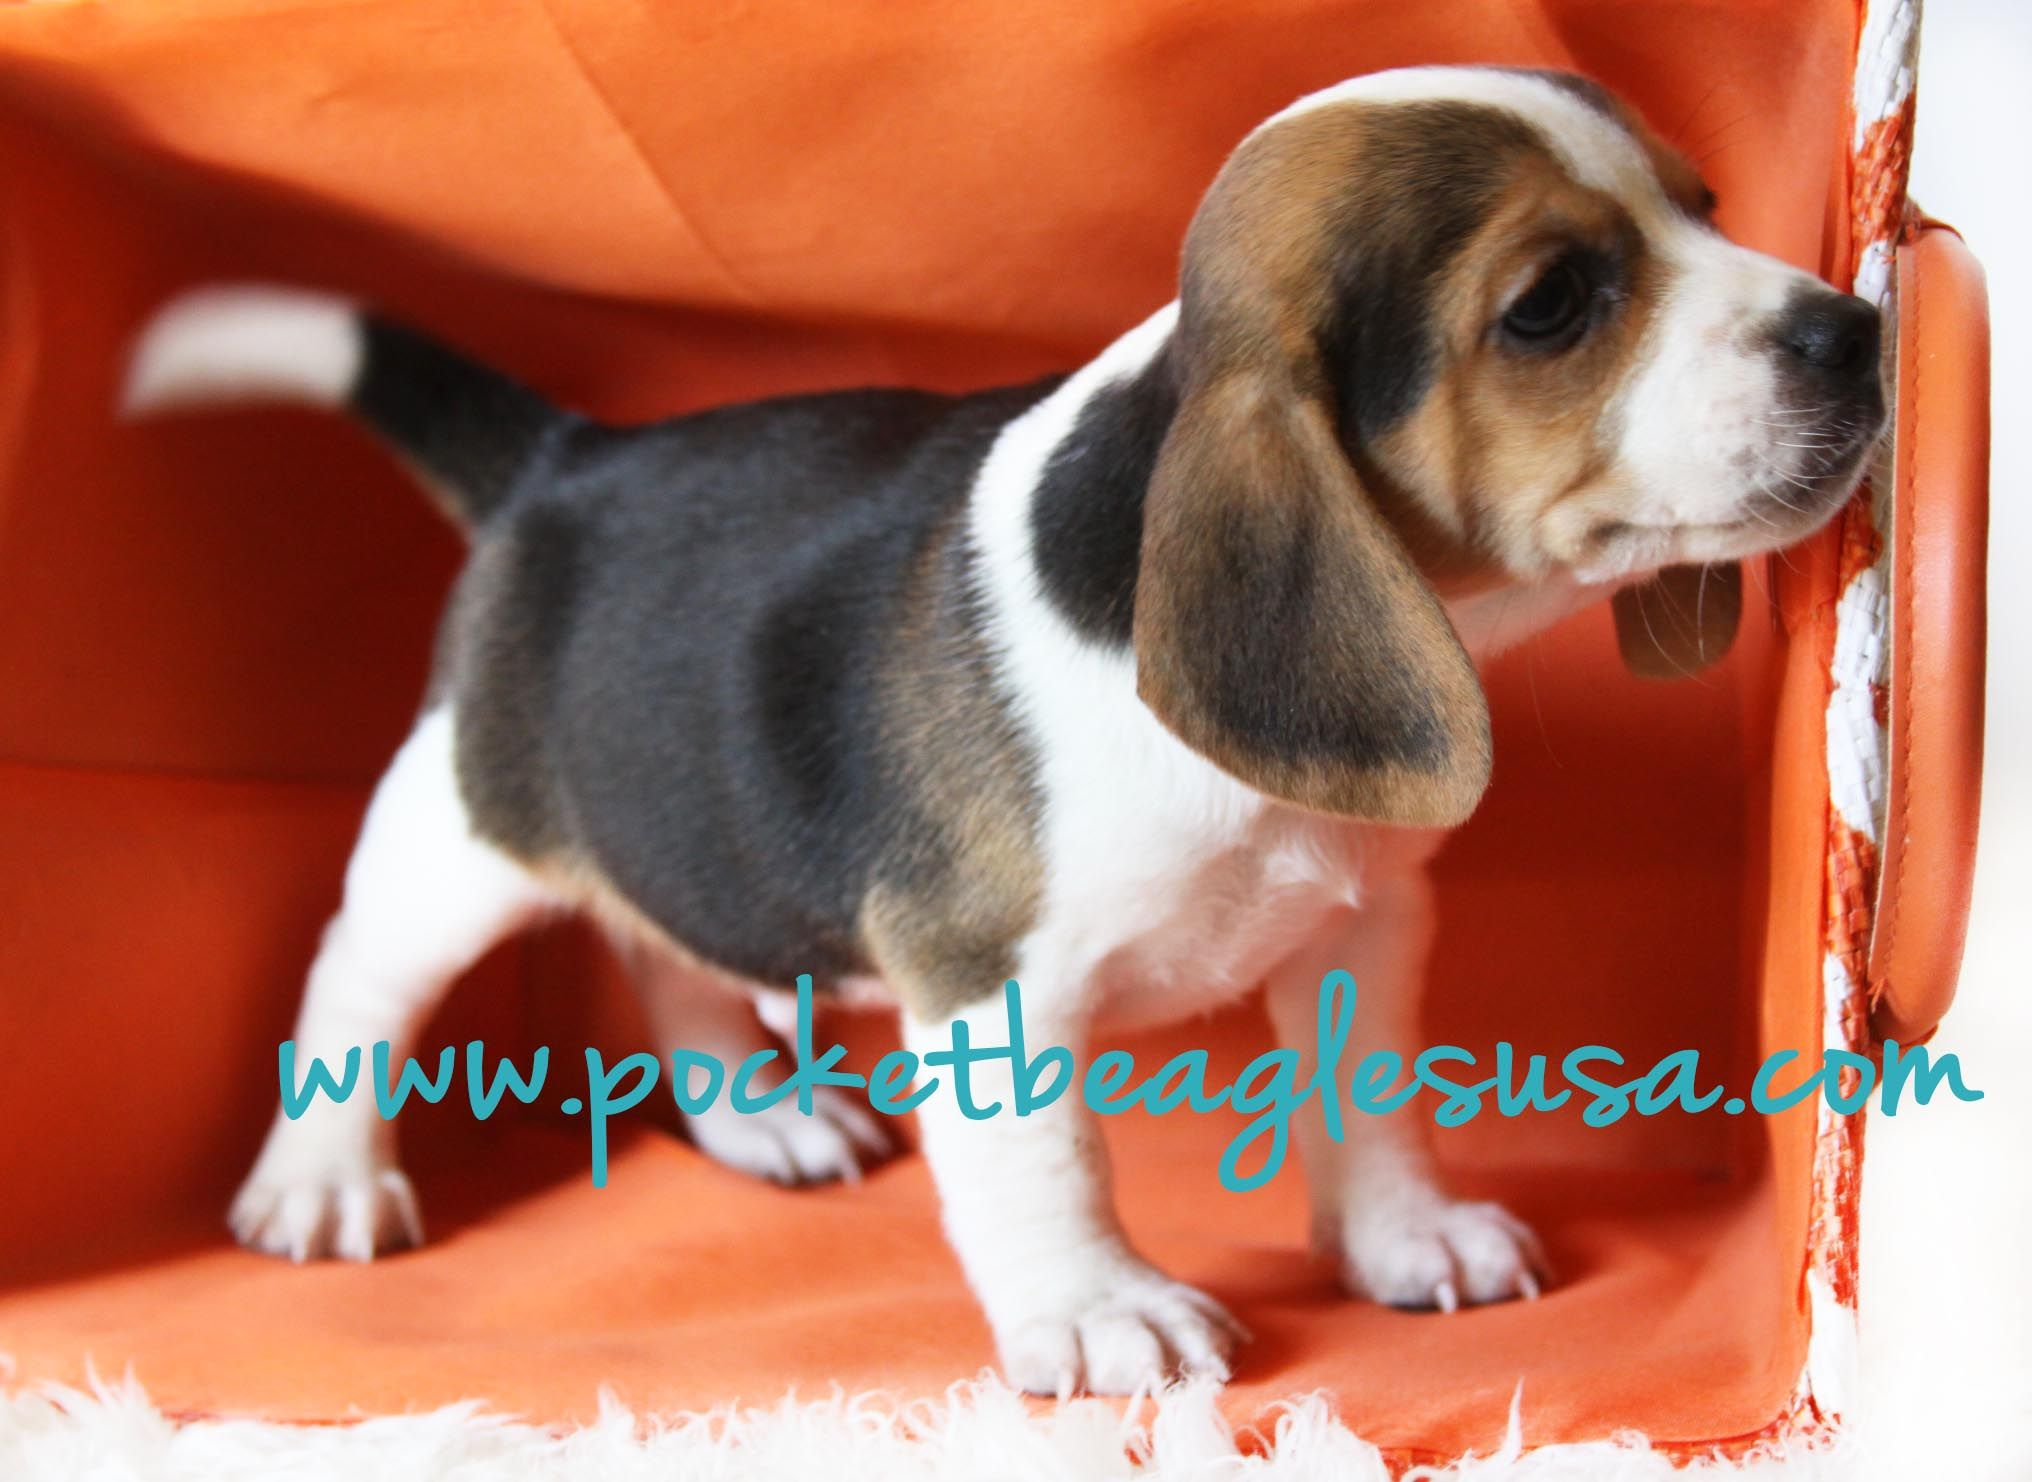 Amazing Puppy From Pocket Beagles Usa Com Pocket Beagle Small Dog